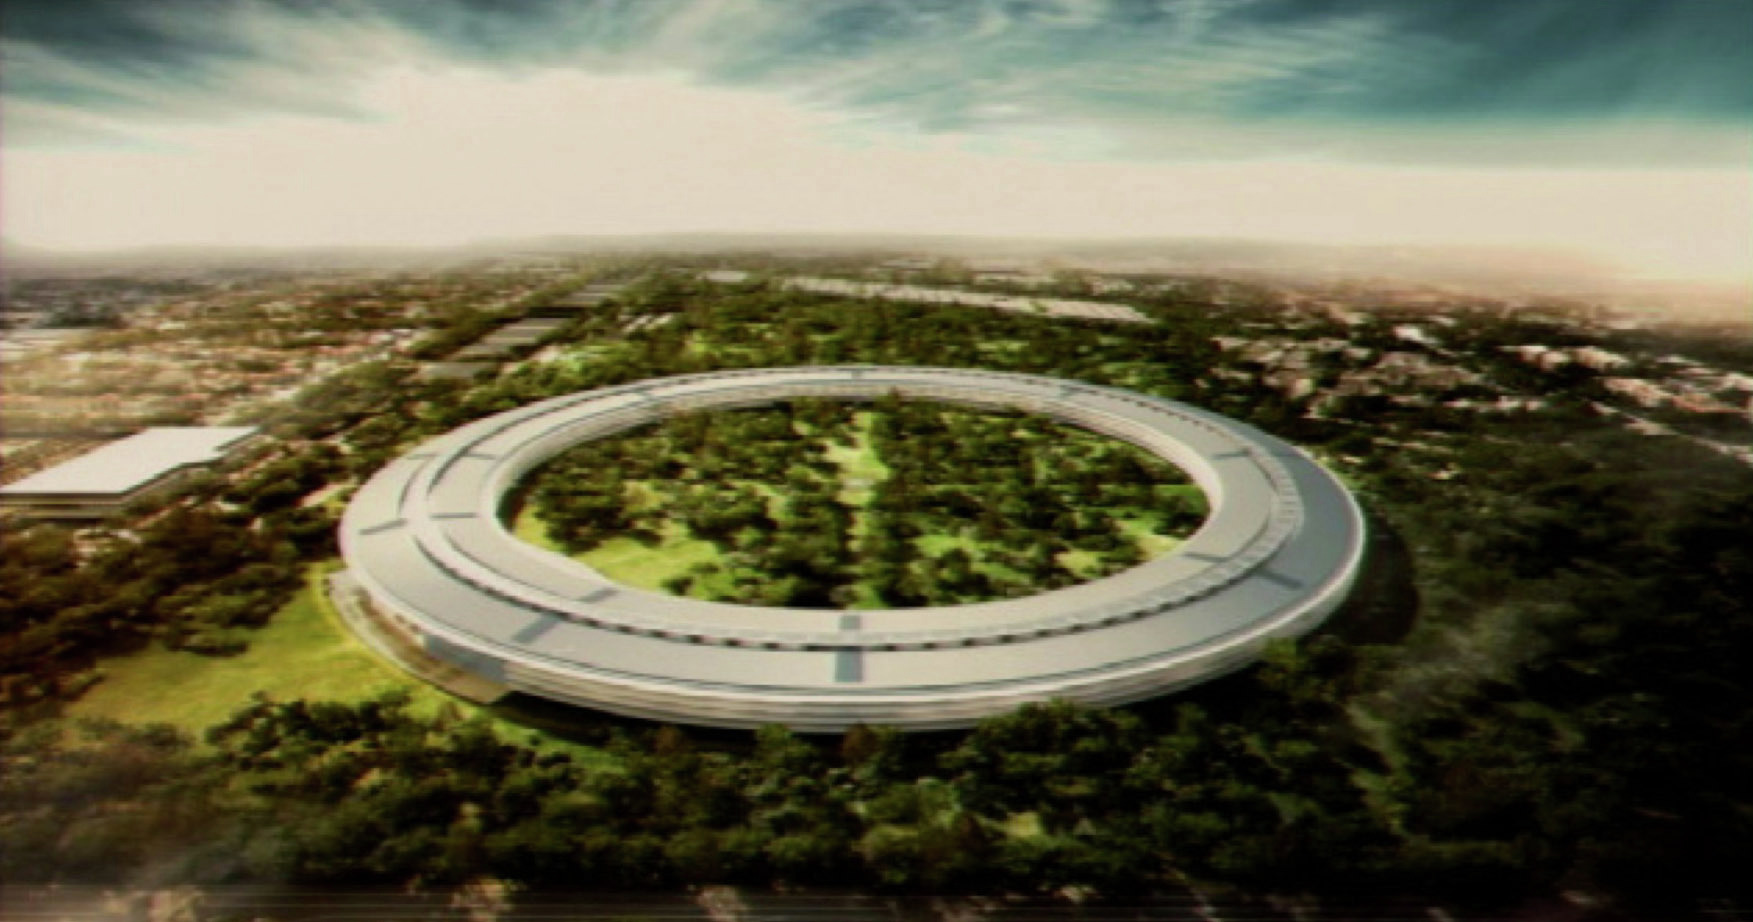 The Apple Campus in Cupertino | ArchDaily